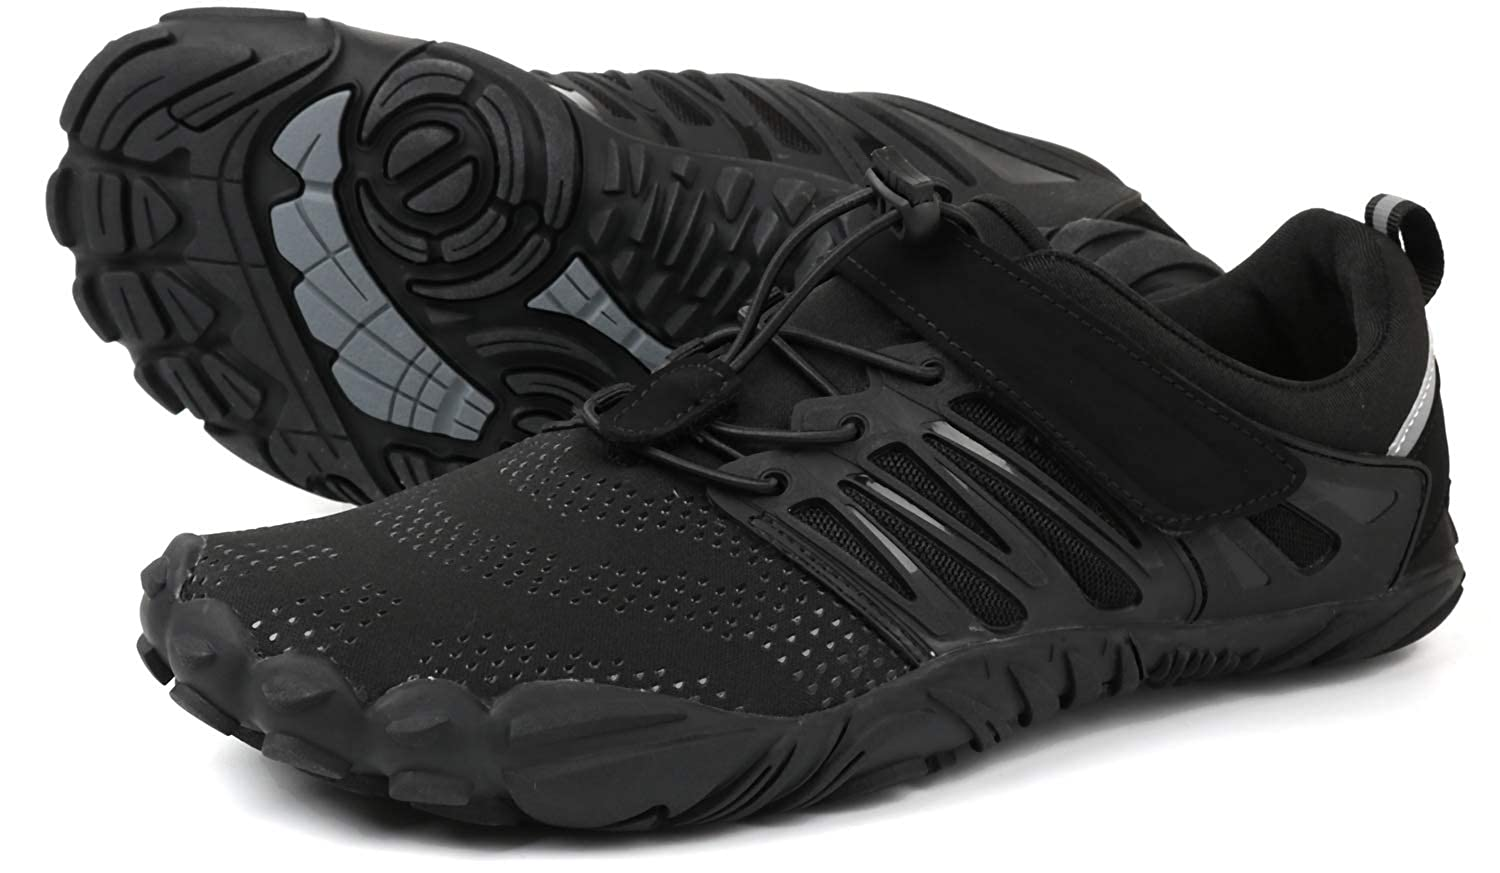 5928d0a39572 WHITIN Men s Wide Toe Minimalist Trail Running Barefoot Shoes   Amazon.co.uk  Shoes   Bags